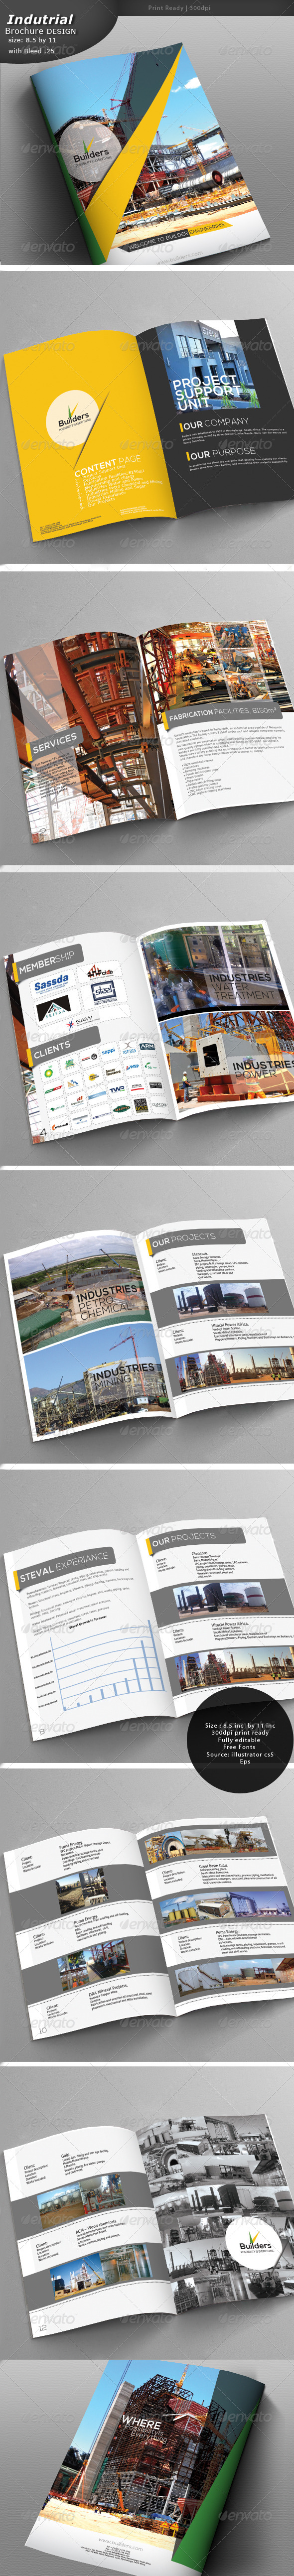 Construction Brochure  - Corporate Brochures